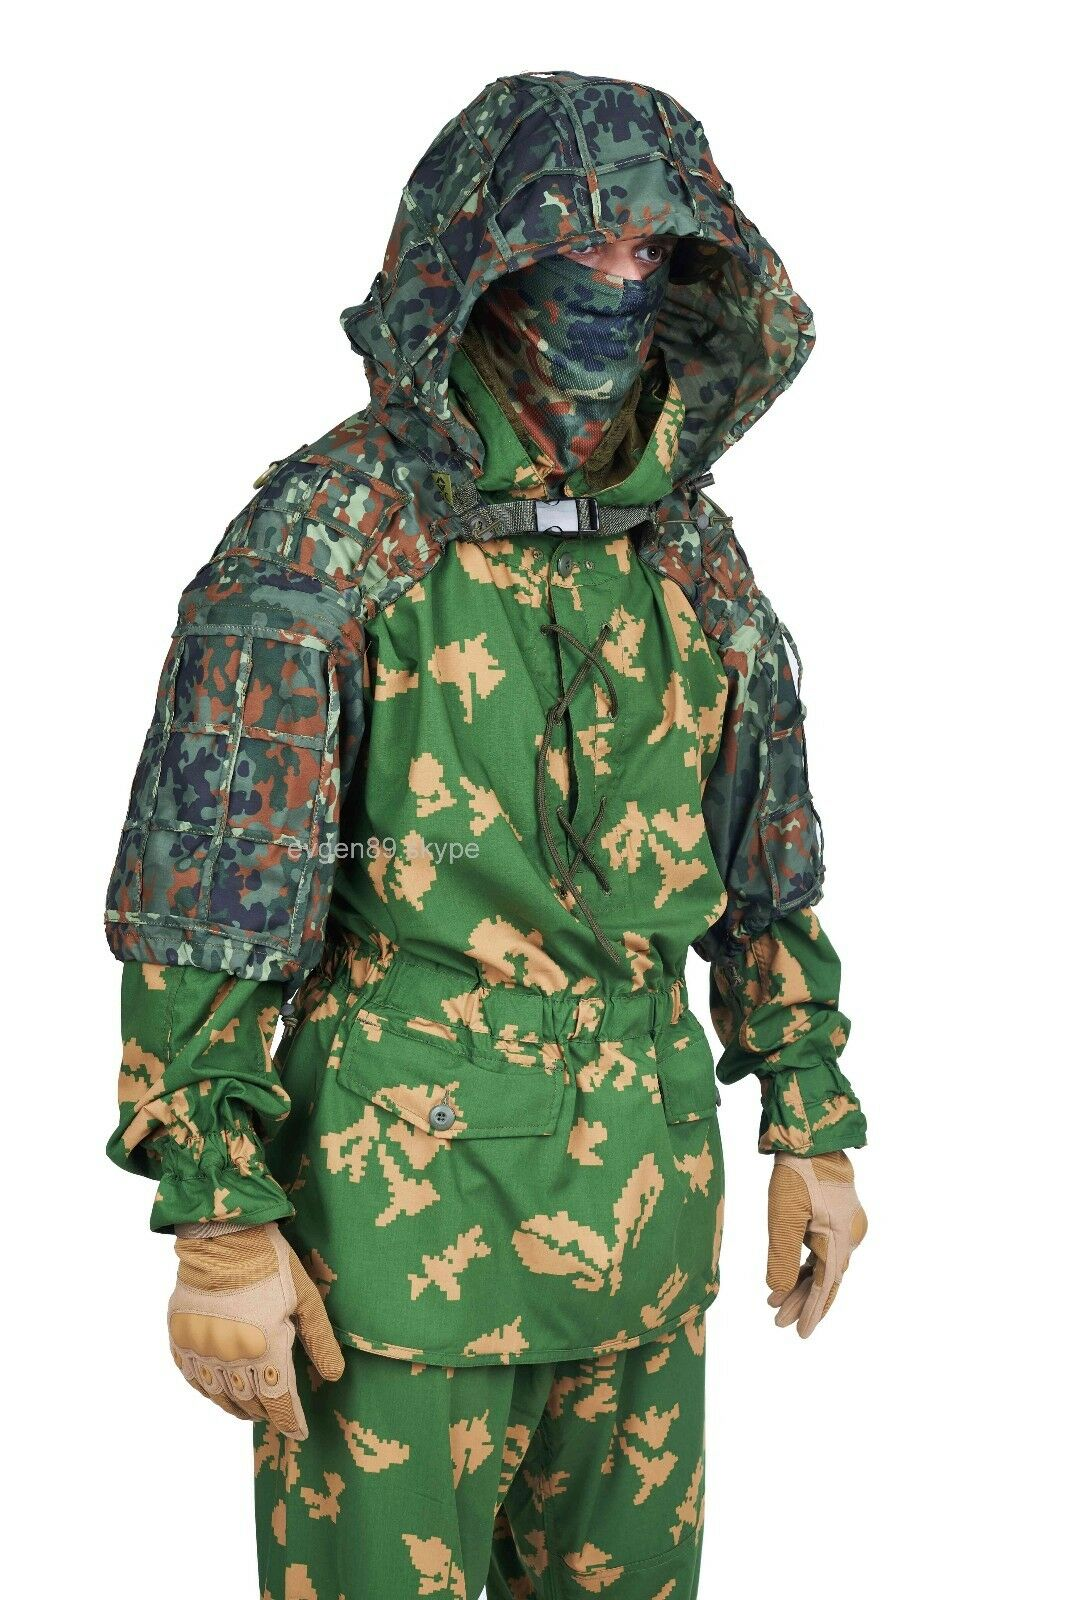 Disguise  Sniper Coat   Viper Hood Russian Spetsnaz Ripstop Flectarn  special offer